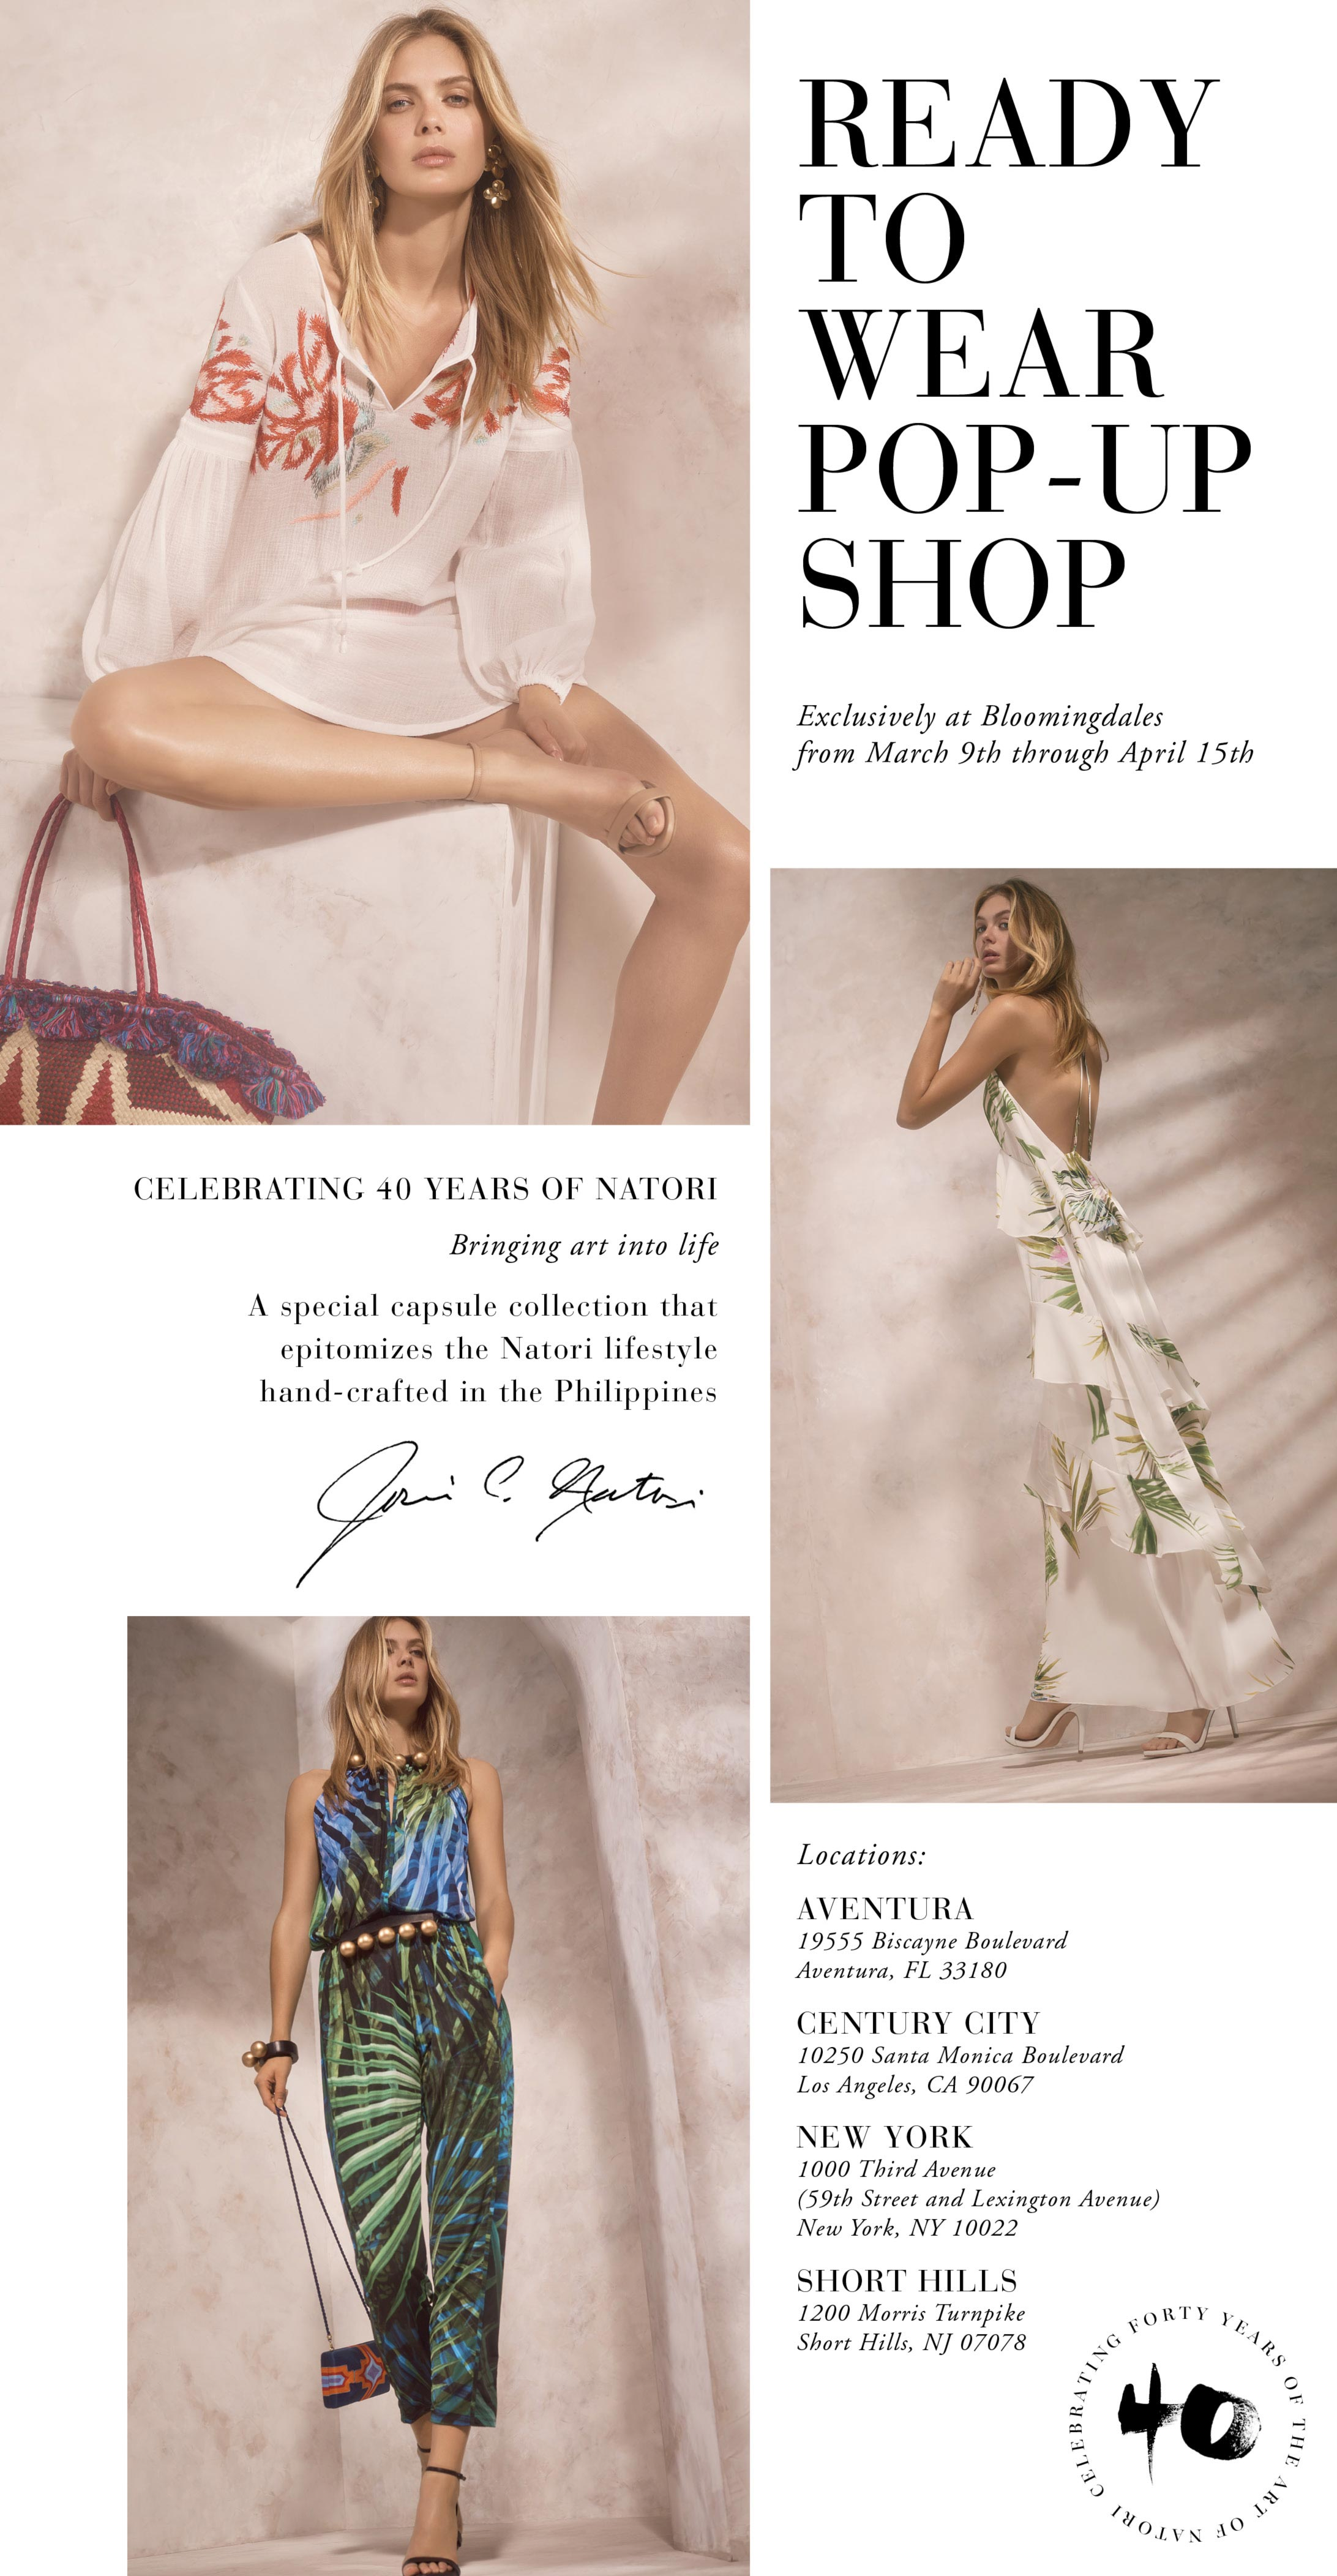 Natori Pop-up Shop